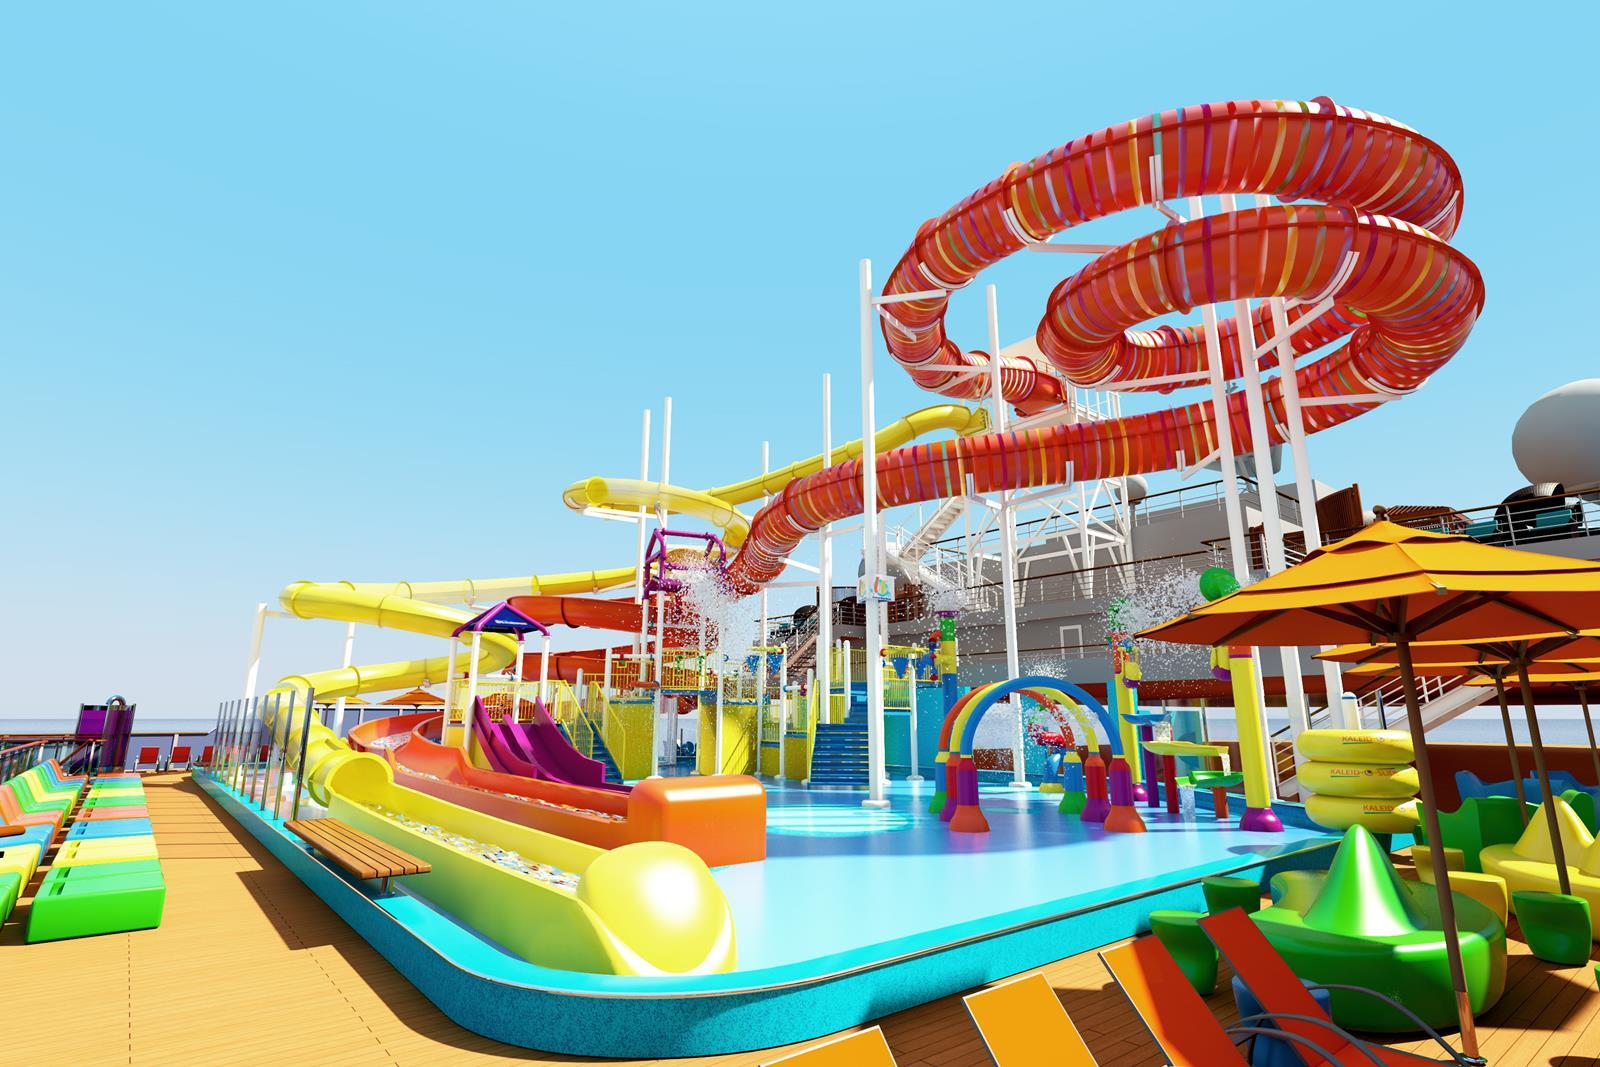 Carnival Vista takes cruising to new heights – Literally!